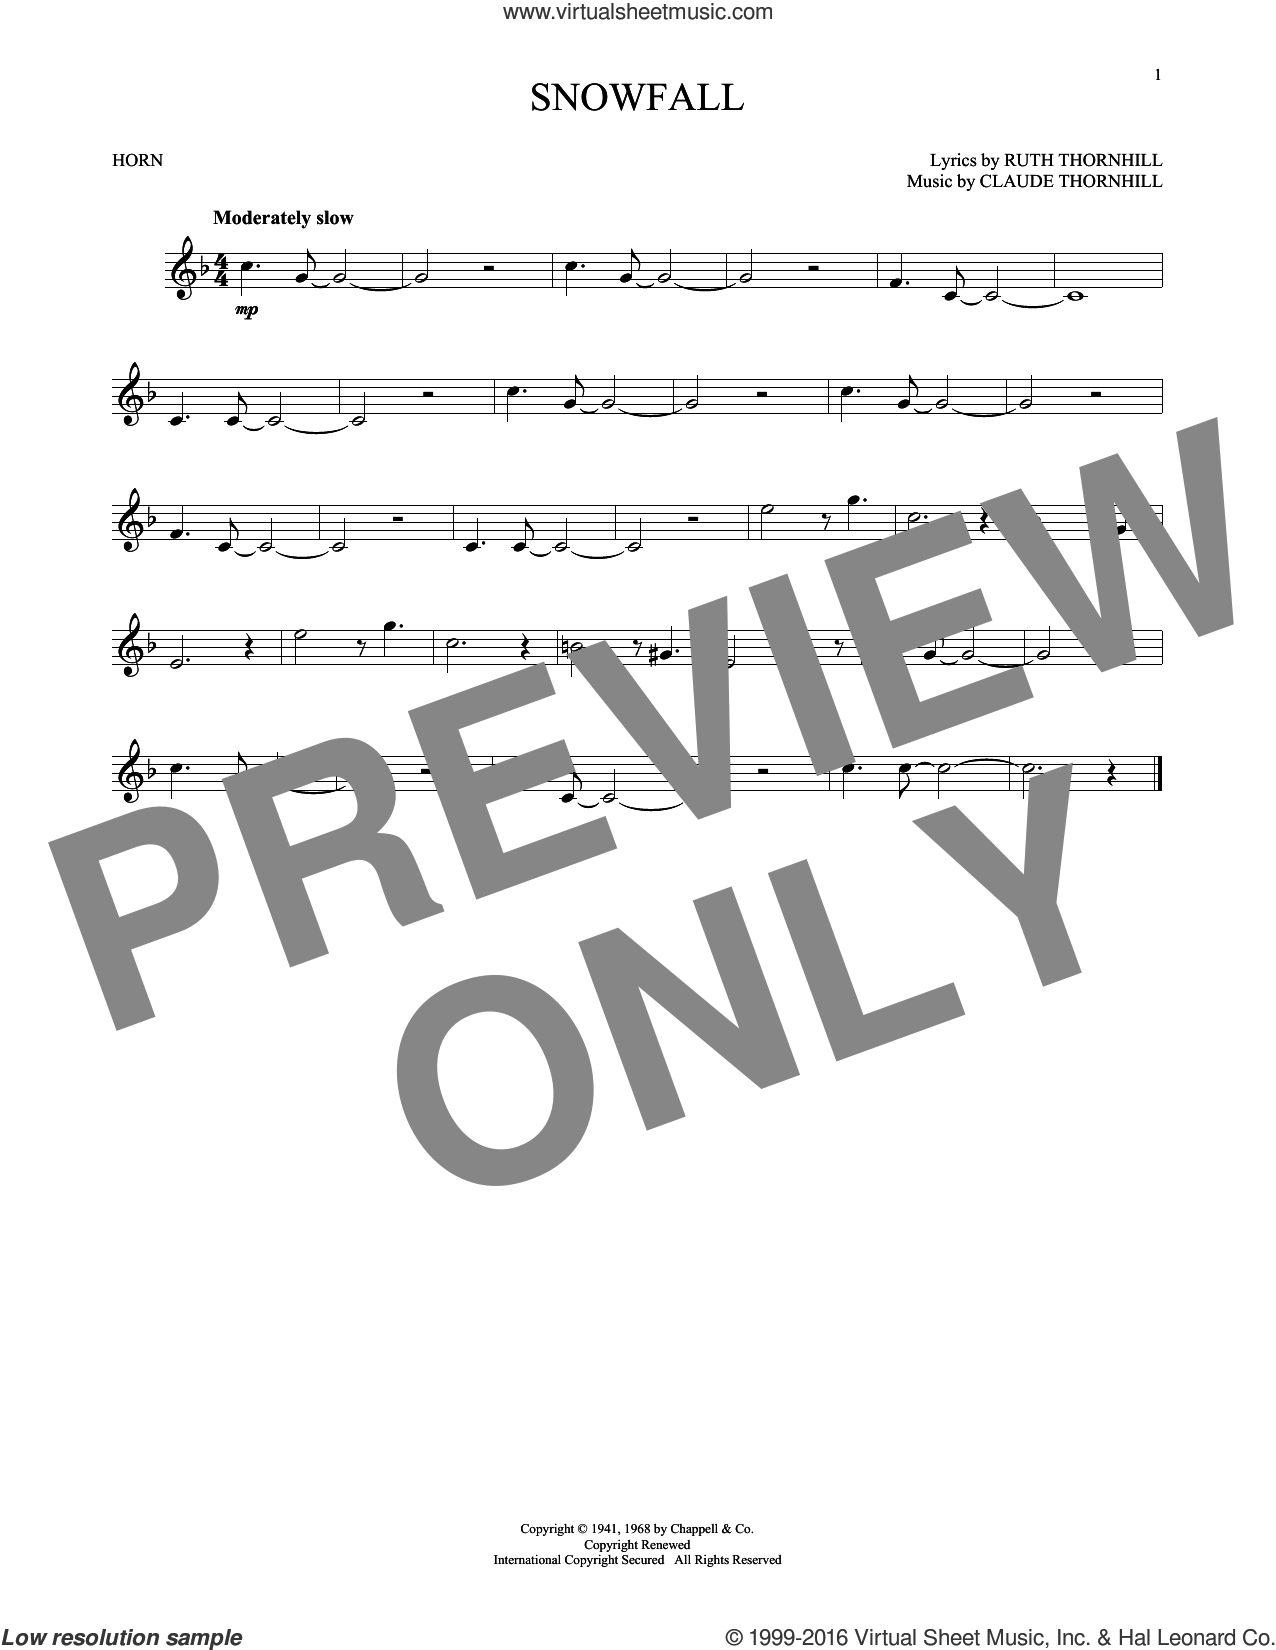 Snowfall sheet music for horn solo by Claude Thornhill, Tony Bennett, Claude & Ruth Thornhill and Ruth Thornhill, intermediate skill level